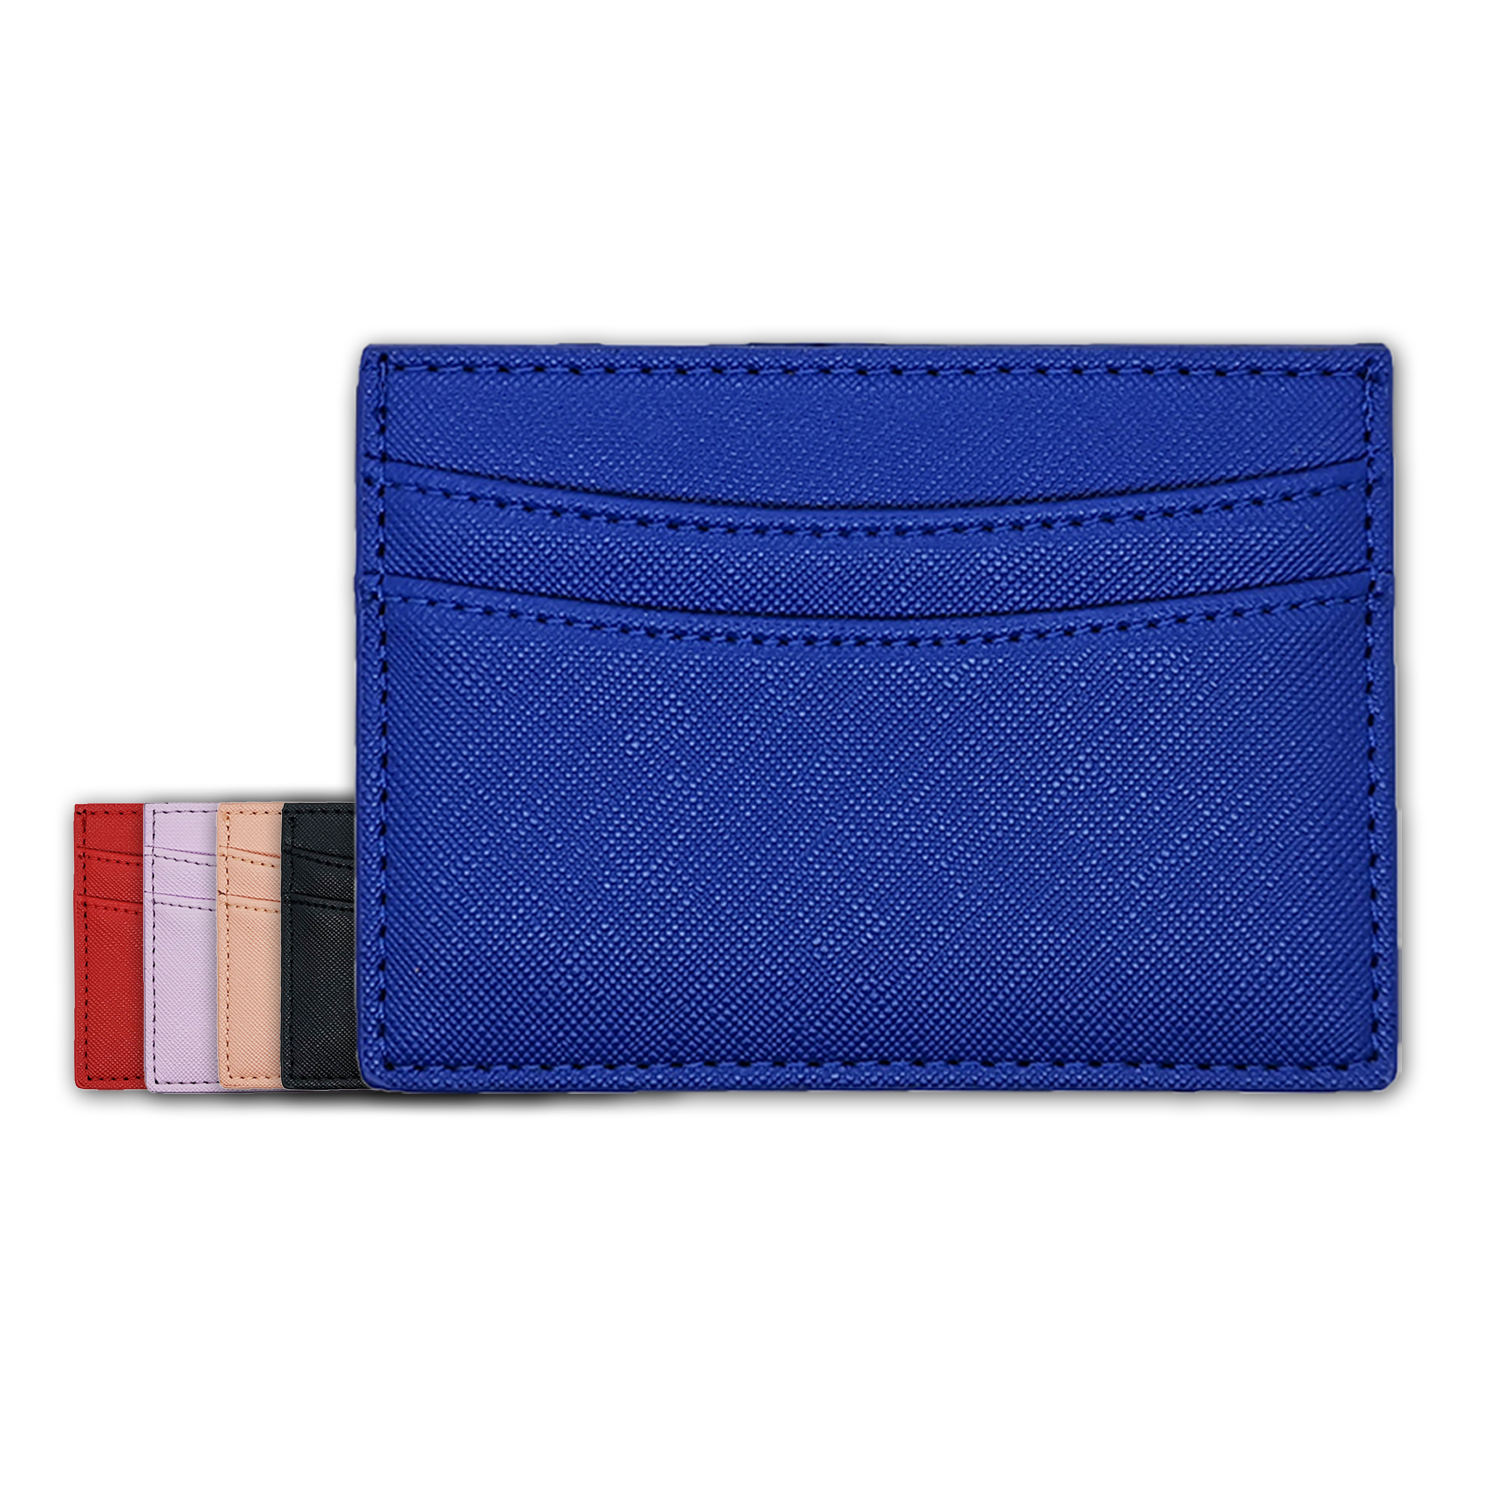 Colorful Saffiano Leather PU leather cardholder custom debossed or stamp logo Cross name card holder